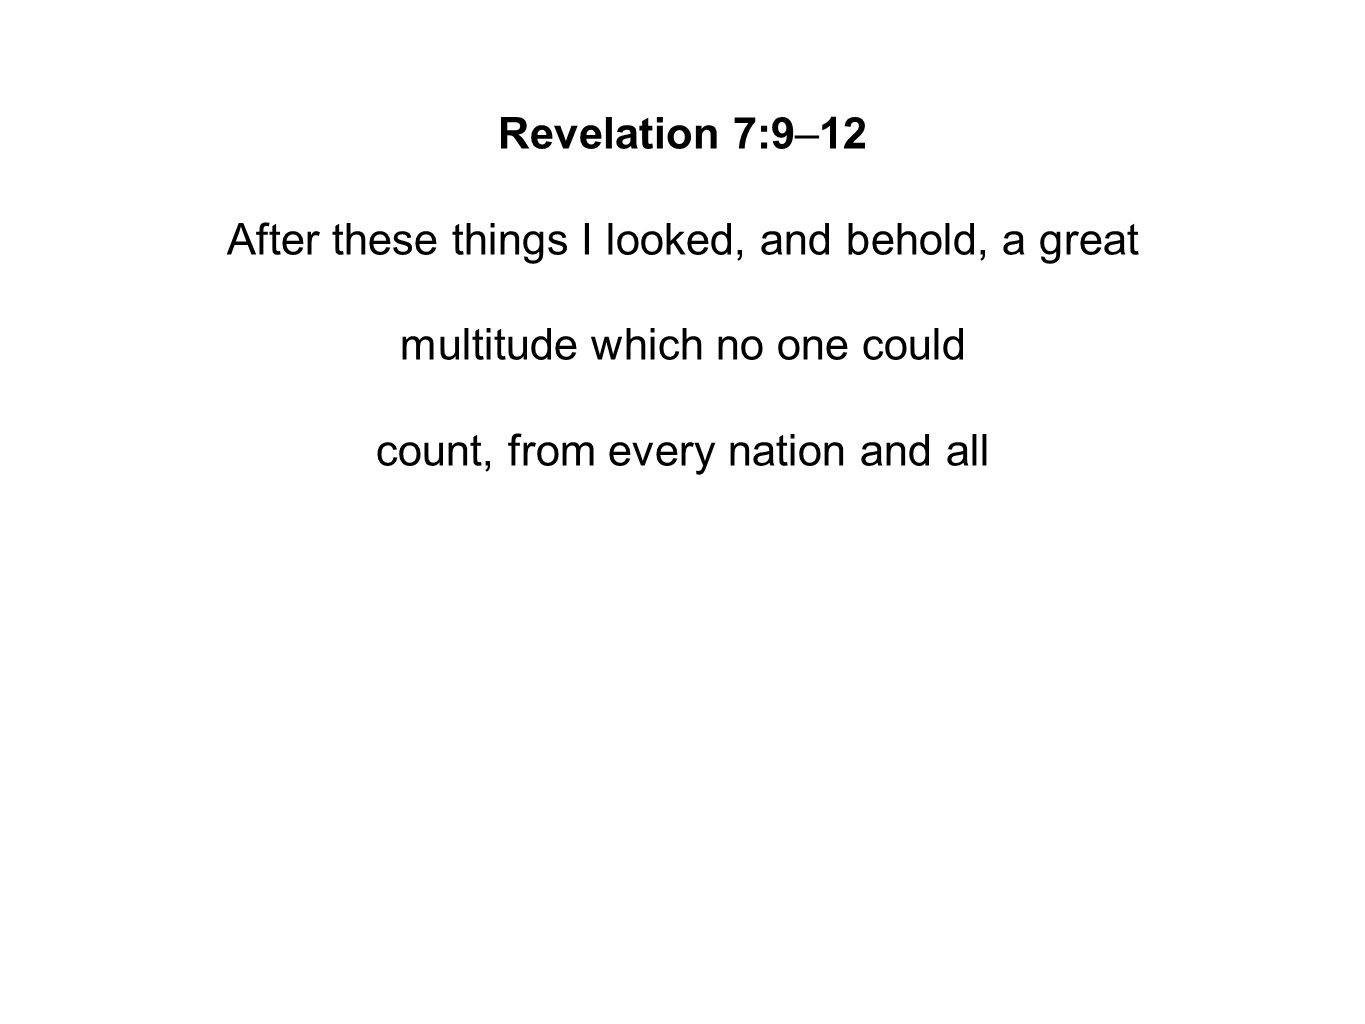 Revelation 7:9–12 After these things I looked, and behold, a great multitude which no one could count, from every nation and all